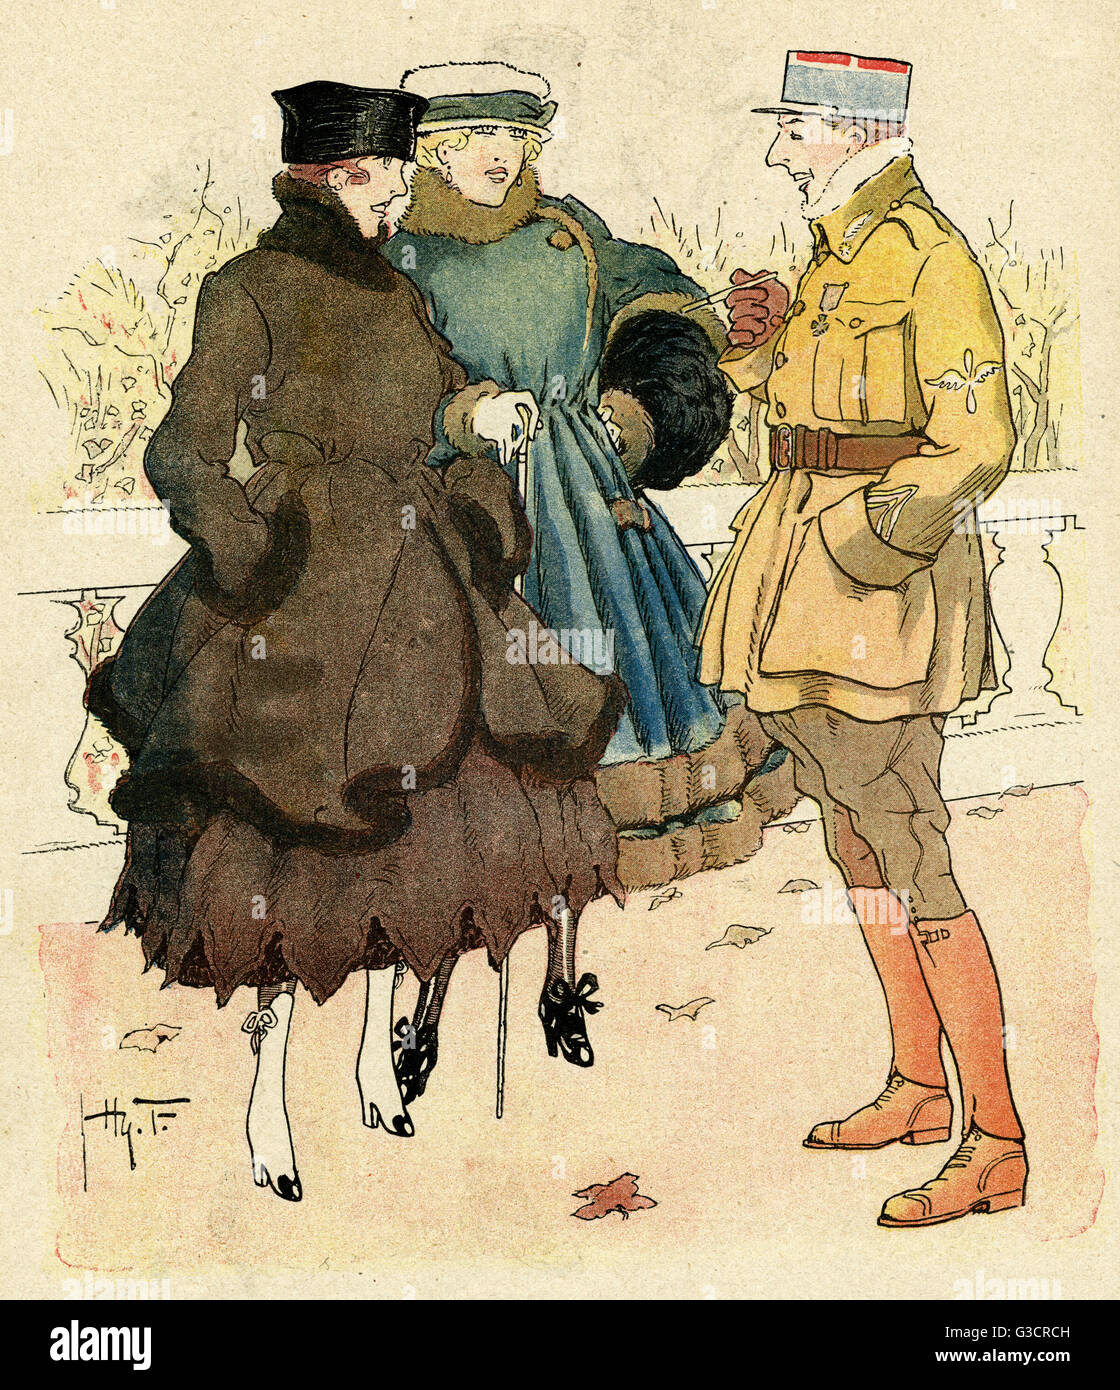 Cartoon, Stoicism -- a French aviator impresses two fashionable women with his toughness during a bombardment.  - Stock Image